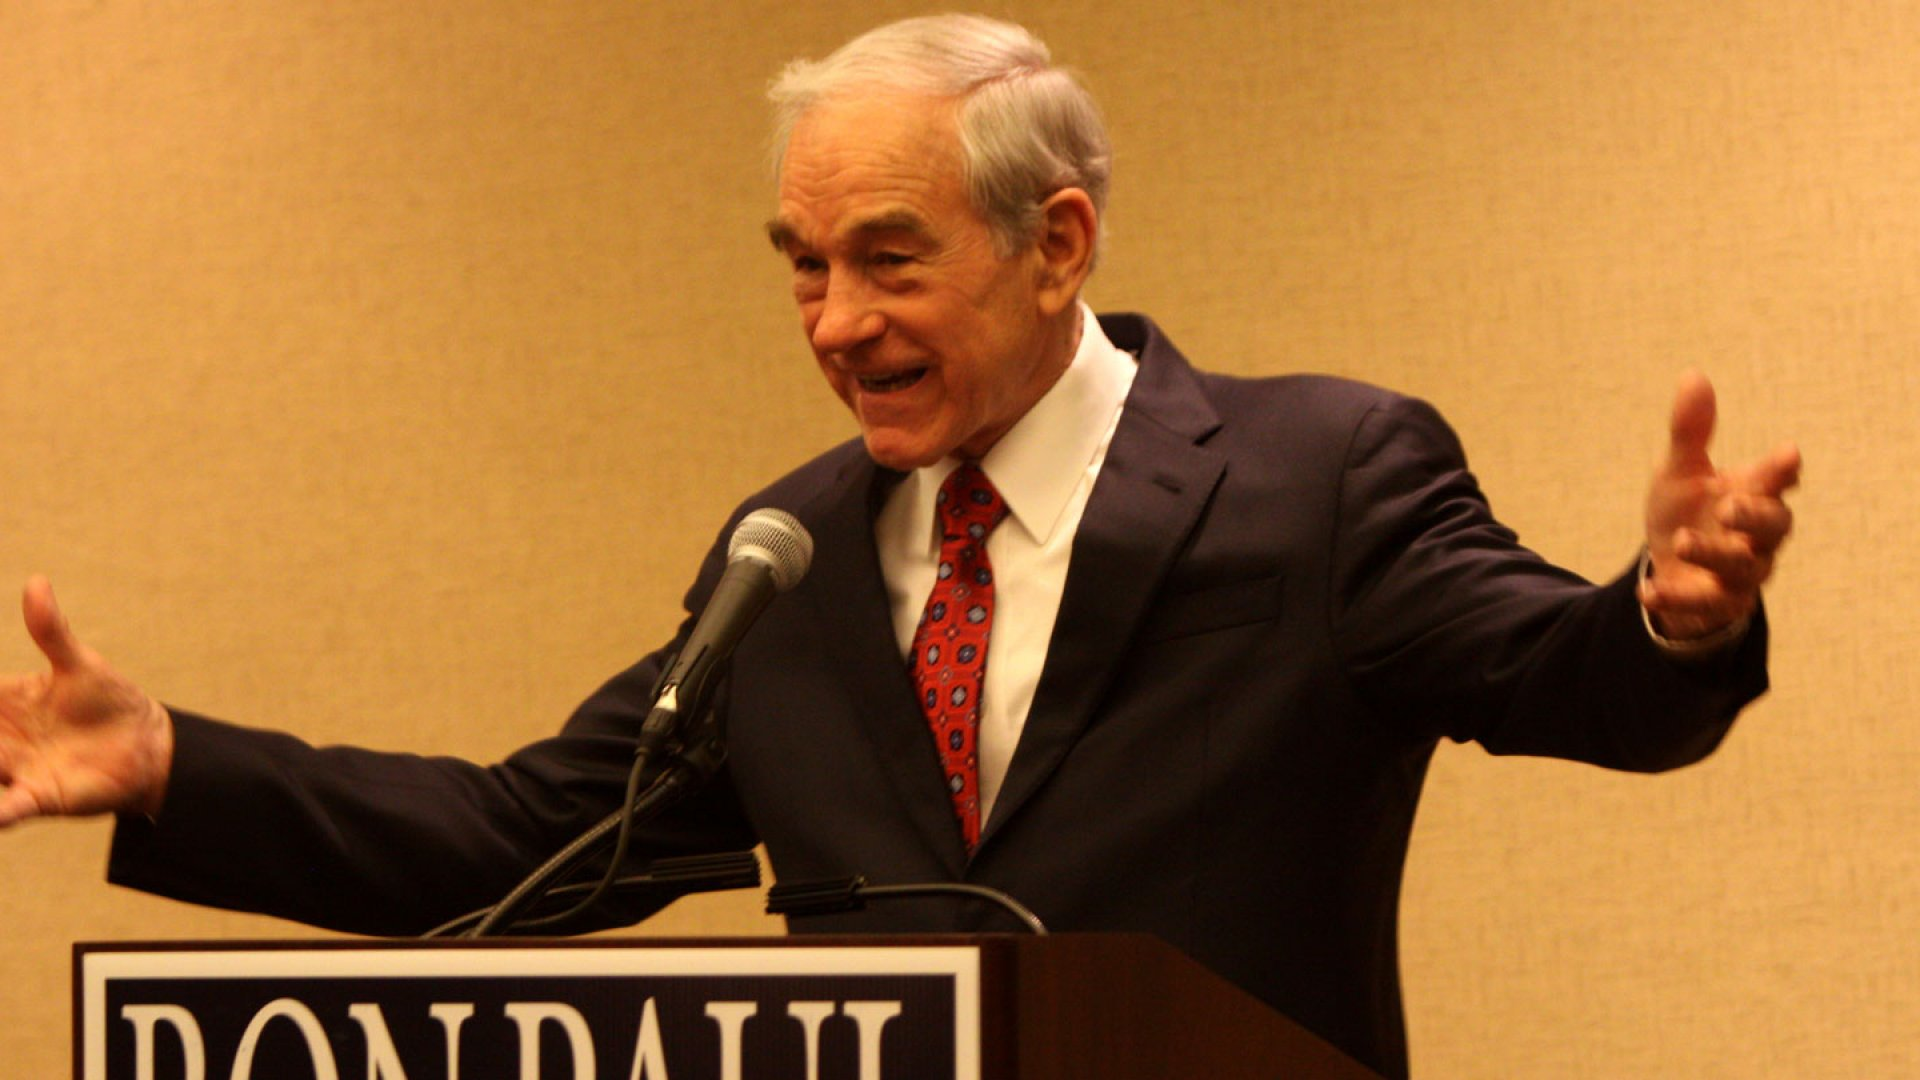 Rep. Ron Paul on the campaign trail earlier this year.